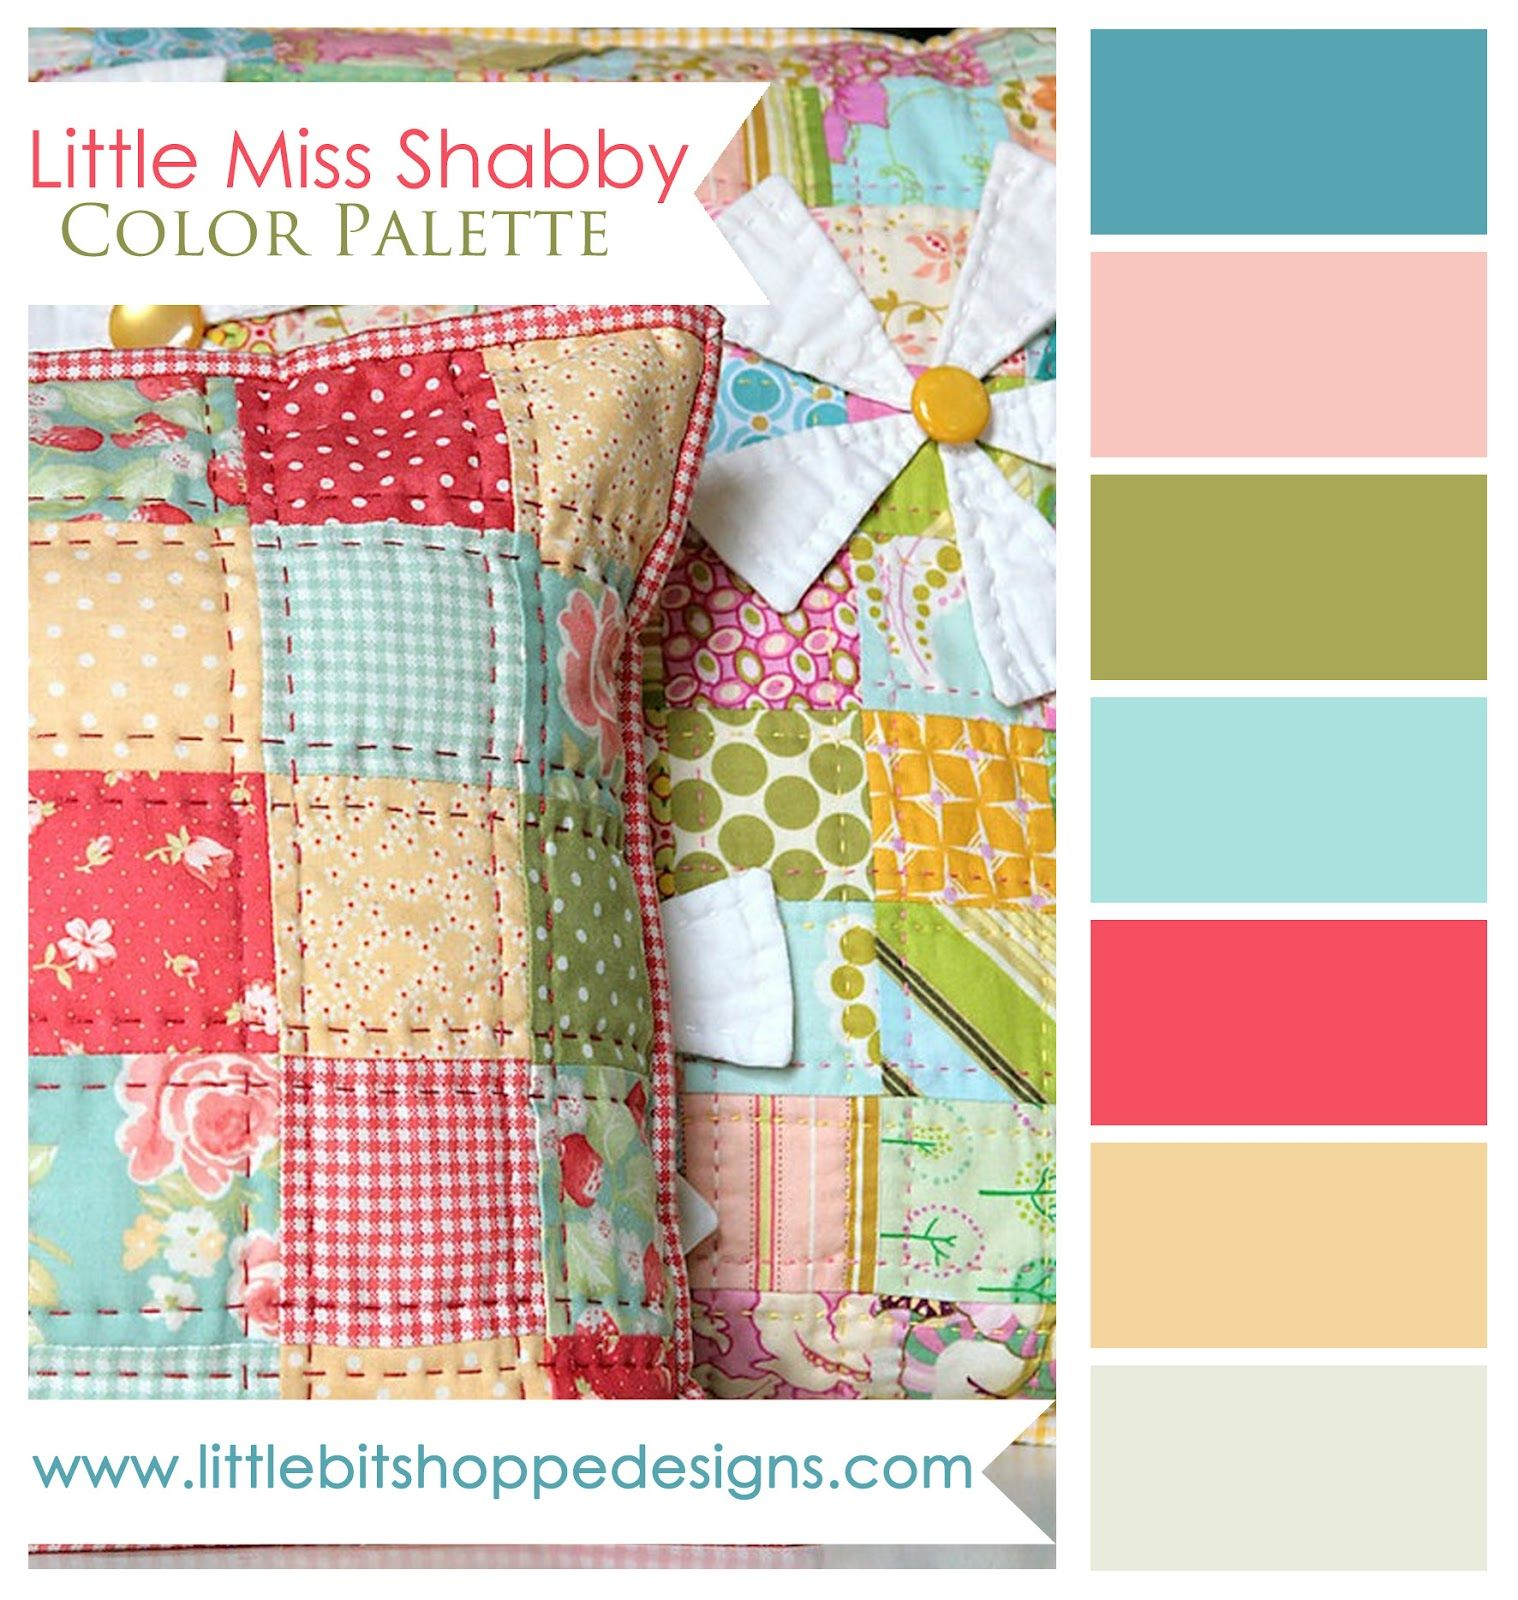 Shabby Chic Bedroom Paint Colors Little Girls Bedroom Ideas Vintage Taylor Swift Bedroom Decorating Ideas Before And After Small Bedroom Makeovers: Little Bit Shoppe Blog: I {he♥rt} Color: Little Miss